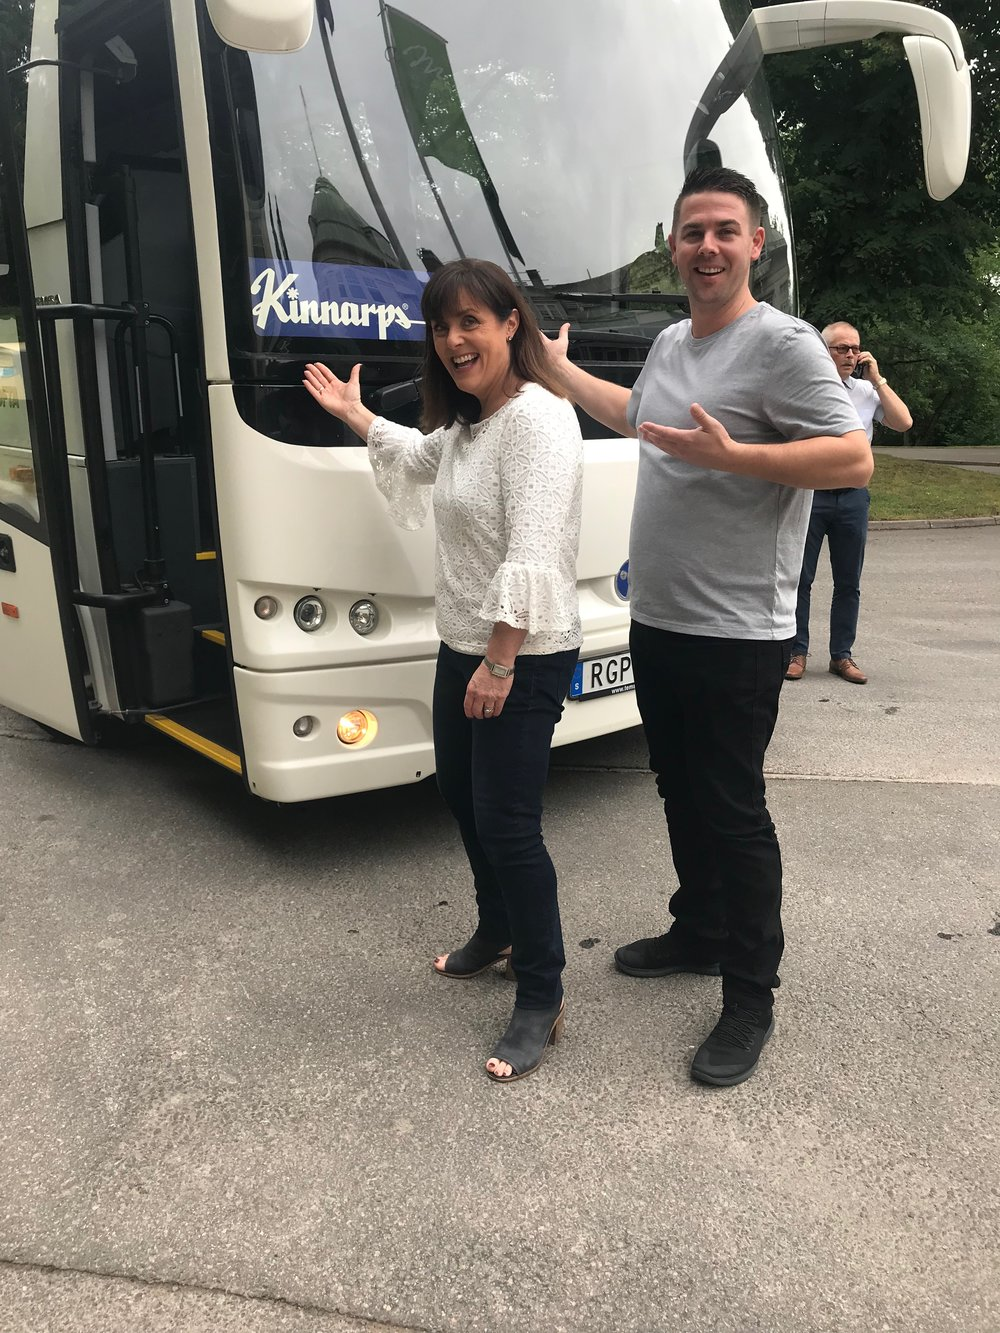 July 2018  KFive+Kinnarps   Joel and Lisa visit our brands in Europe   Two of our brilliant team members visited Europe to undergo their intensive Kinnarps training. Alongside their training, Joel and Lisa took the opportunity to visit some of our European brands and their factories.